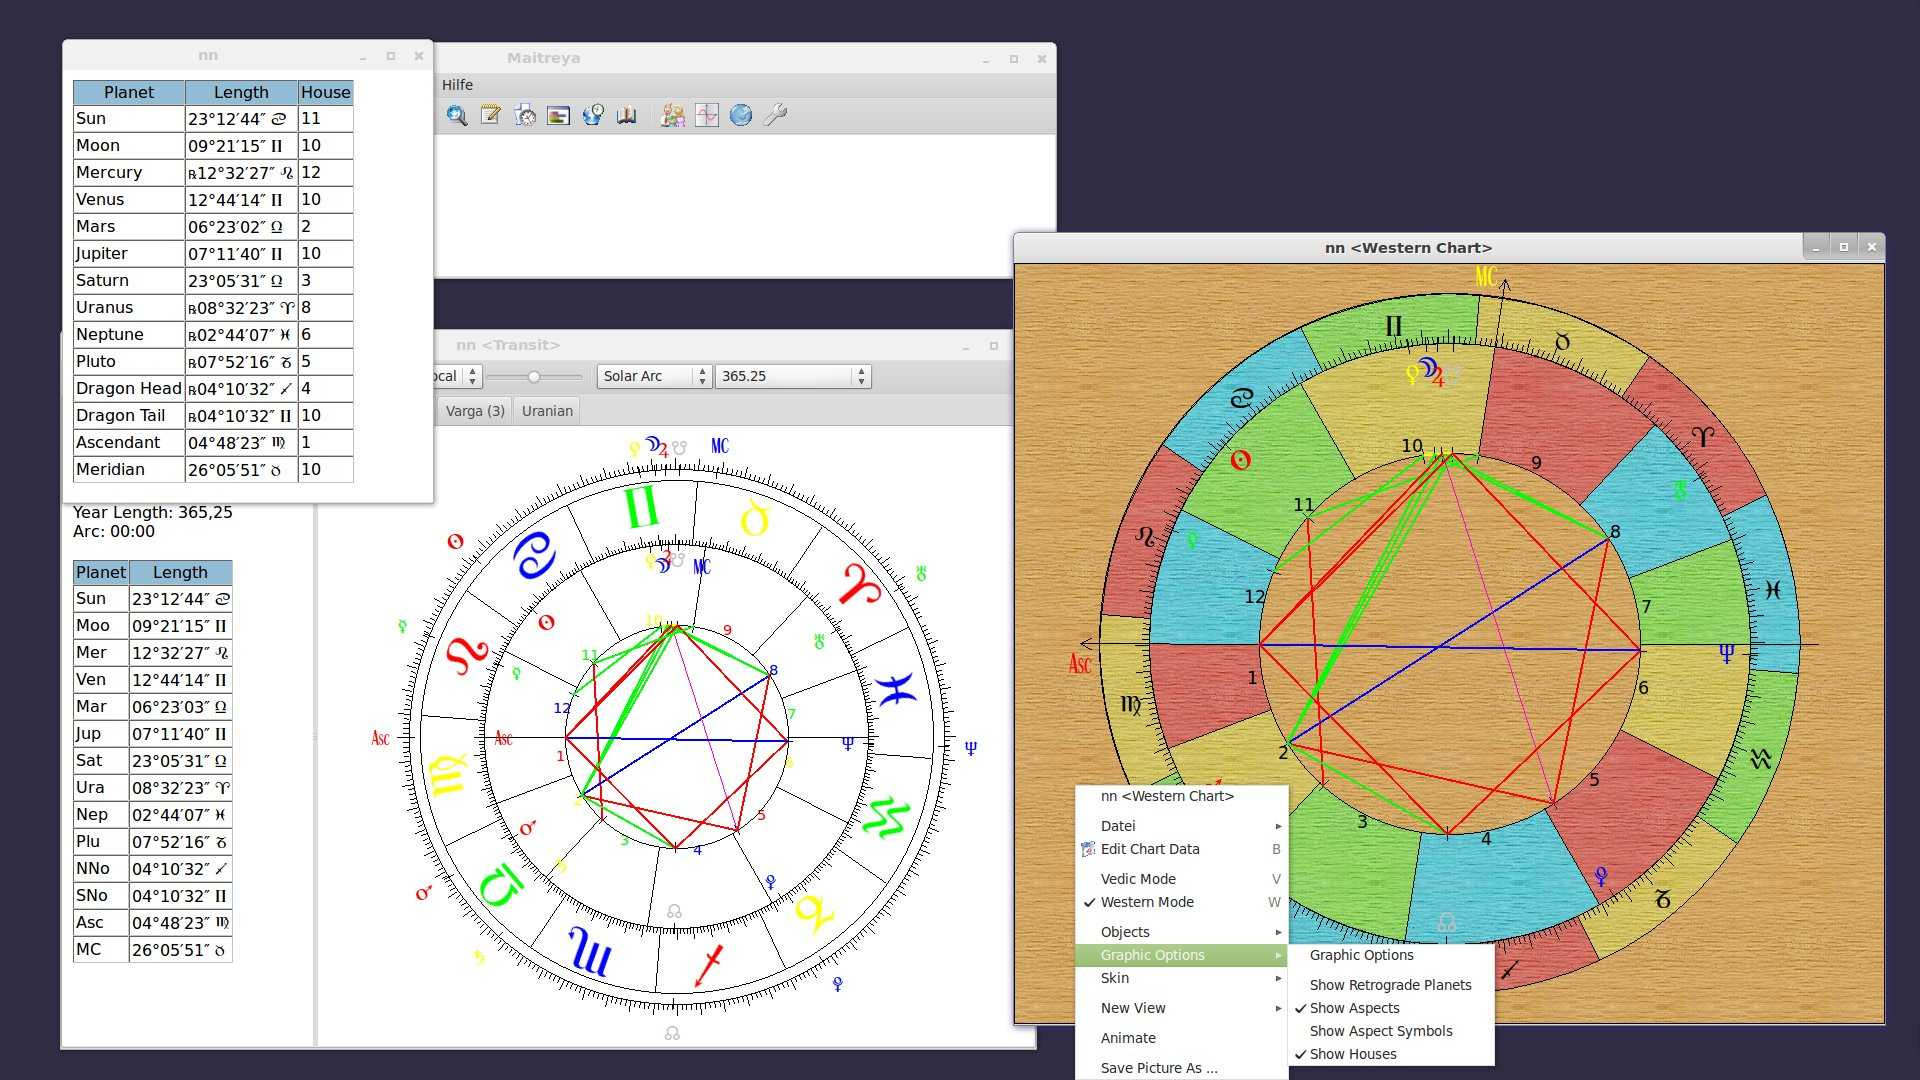 Saravali single page html western astrology planets solar arc radix chart with context menu nvjuhfo Images